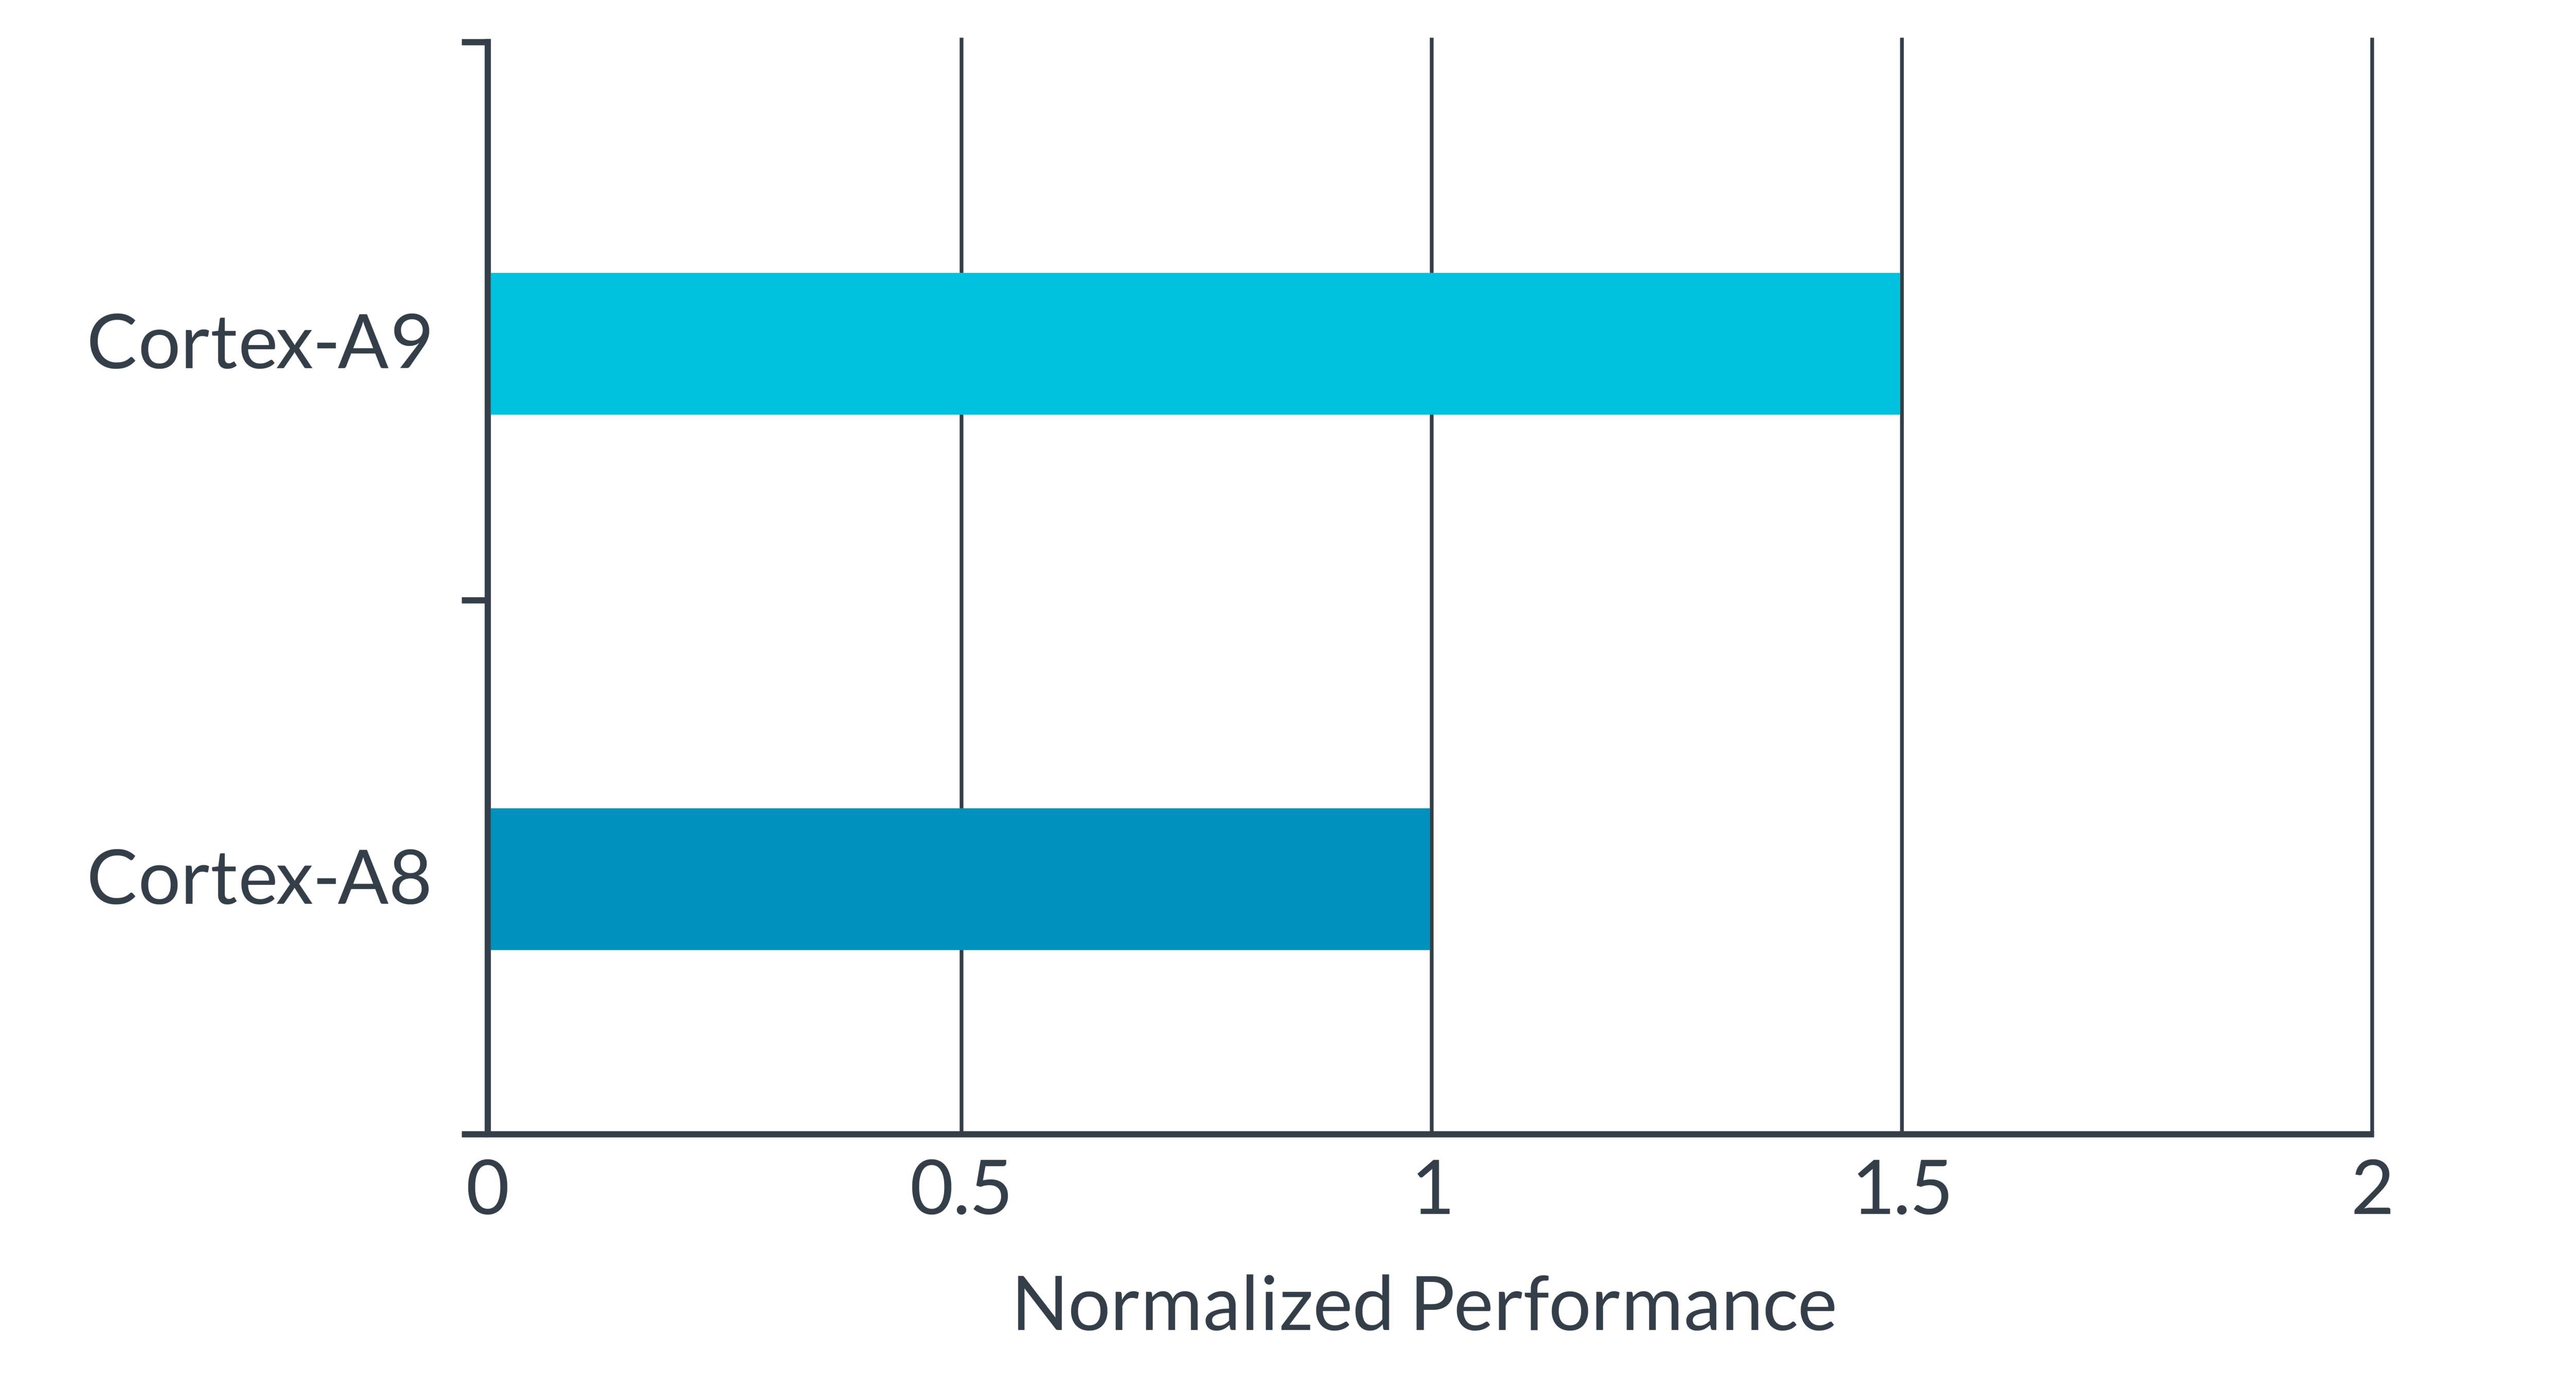 Comparing performance graph of Cortex-A9 and Cortex-A8.